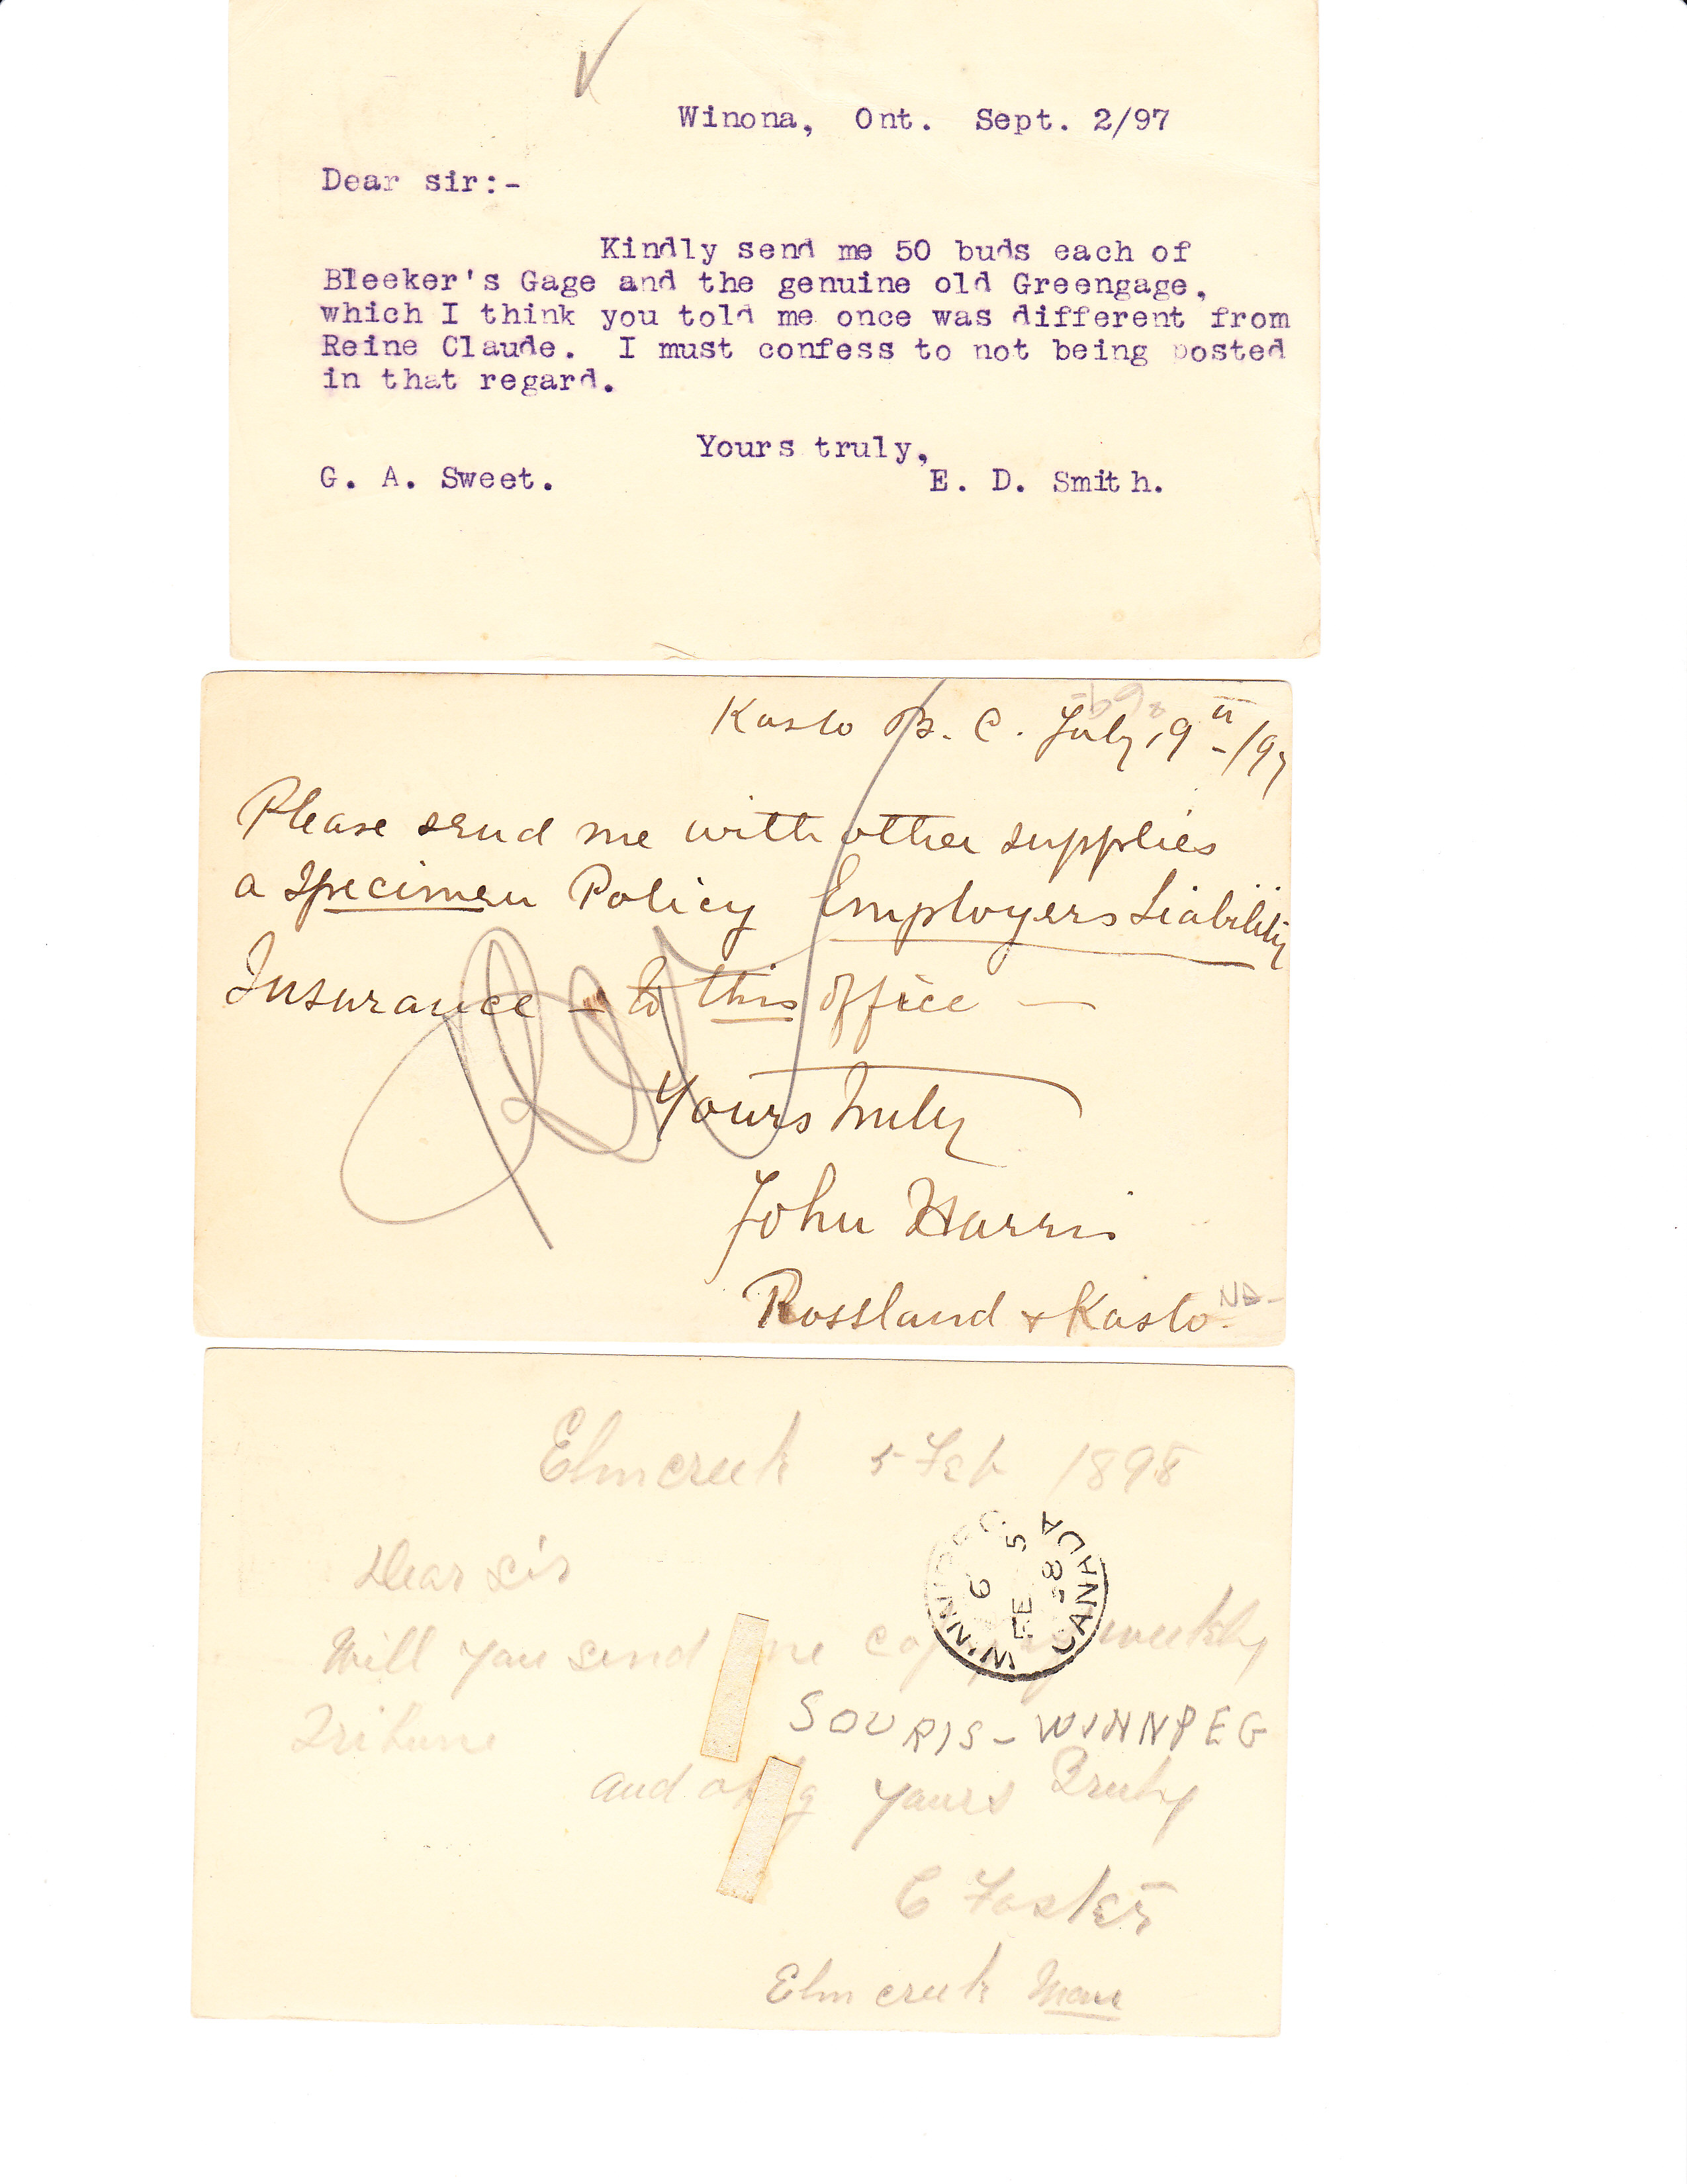 Bill Radcliffe Jubilee Cover Squared Circle Cancellations